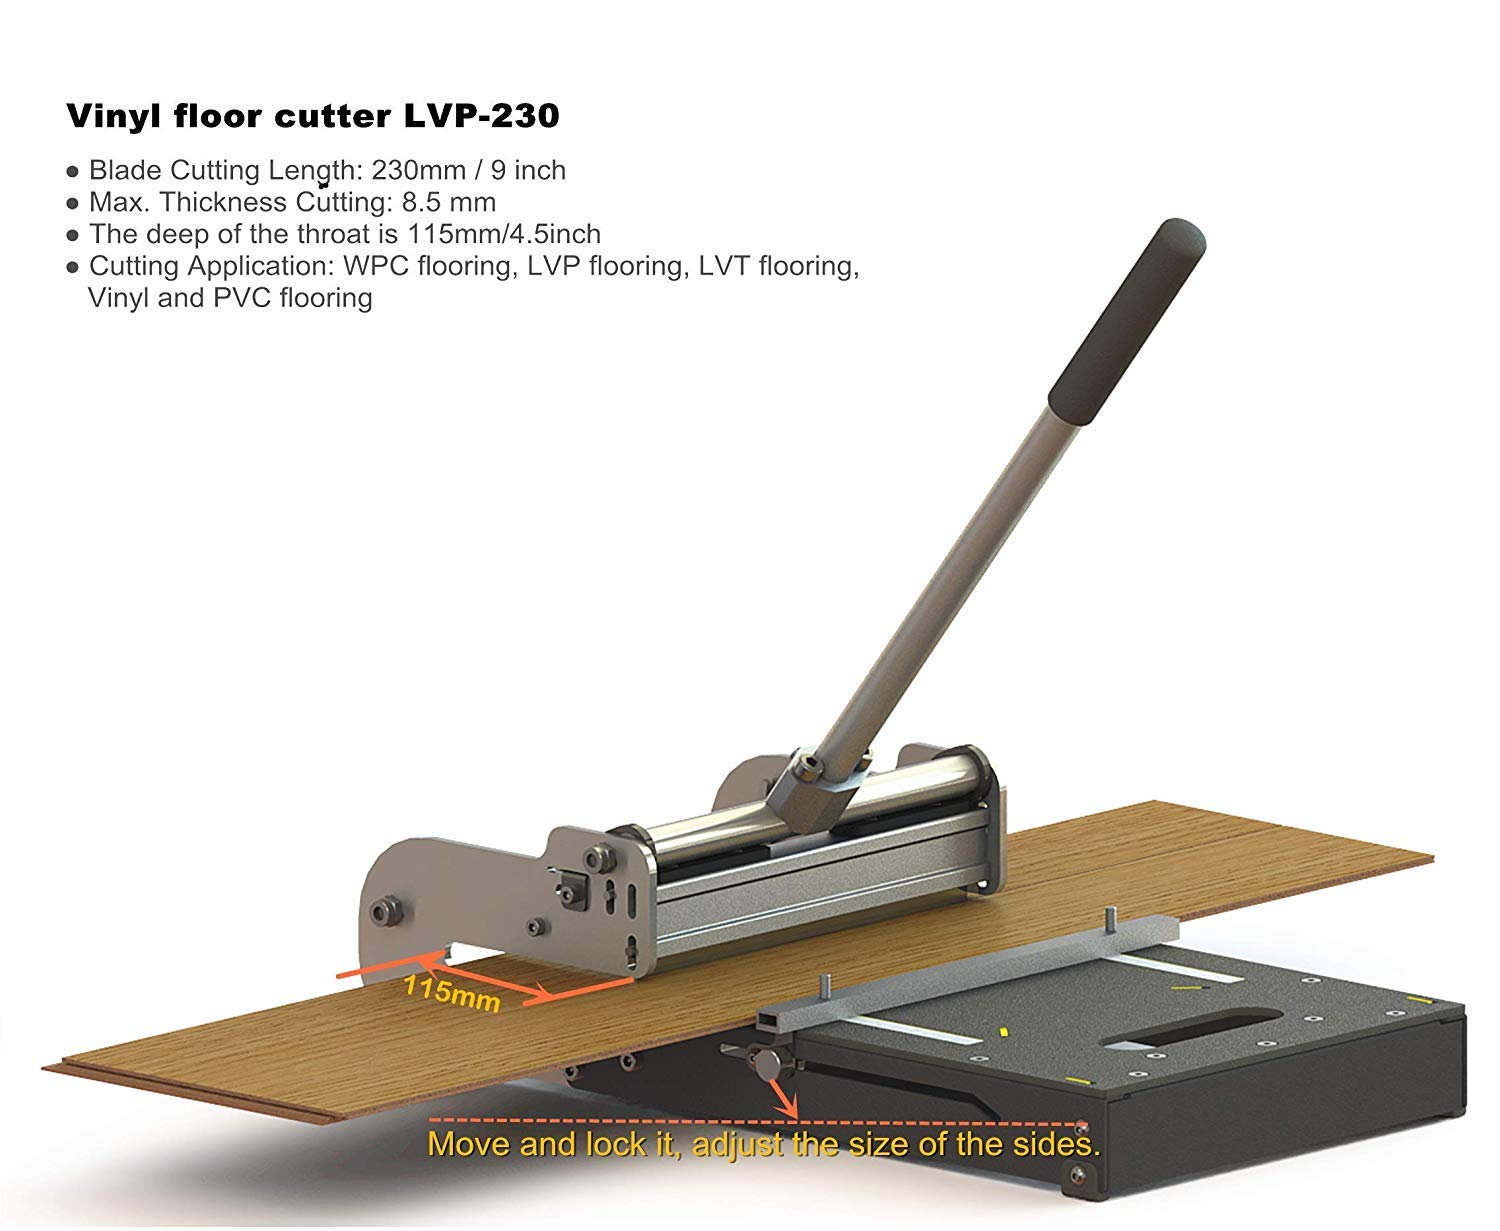 MantisTol 9'' Pro LVT/VCT/LVP/PVC/WPC/Vinyl flooring Cutter LVP-230, best buy! Limited to the floors of the second pic on the left side (Yes)! by MANTISTOL